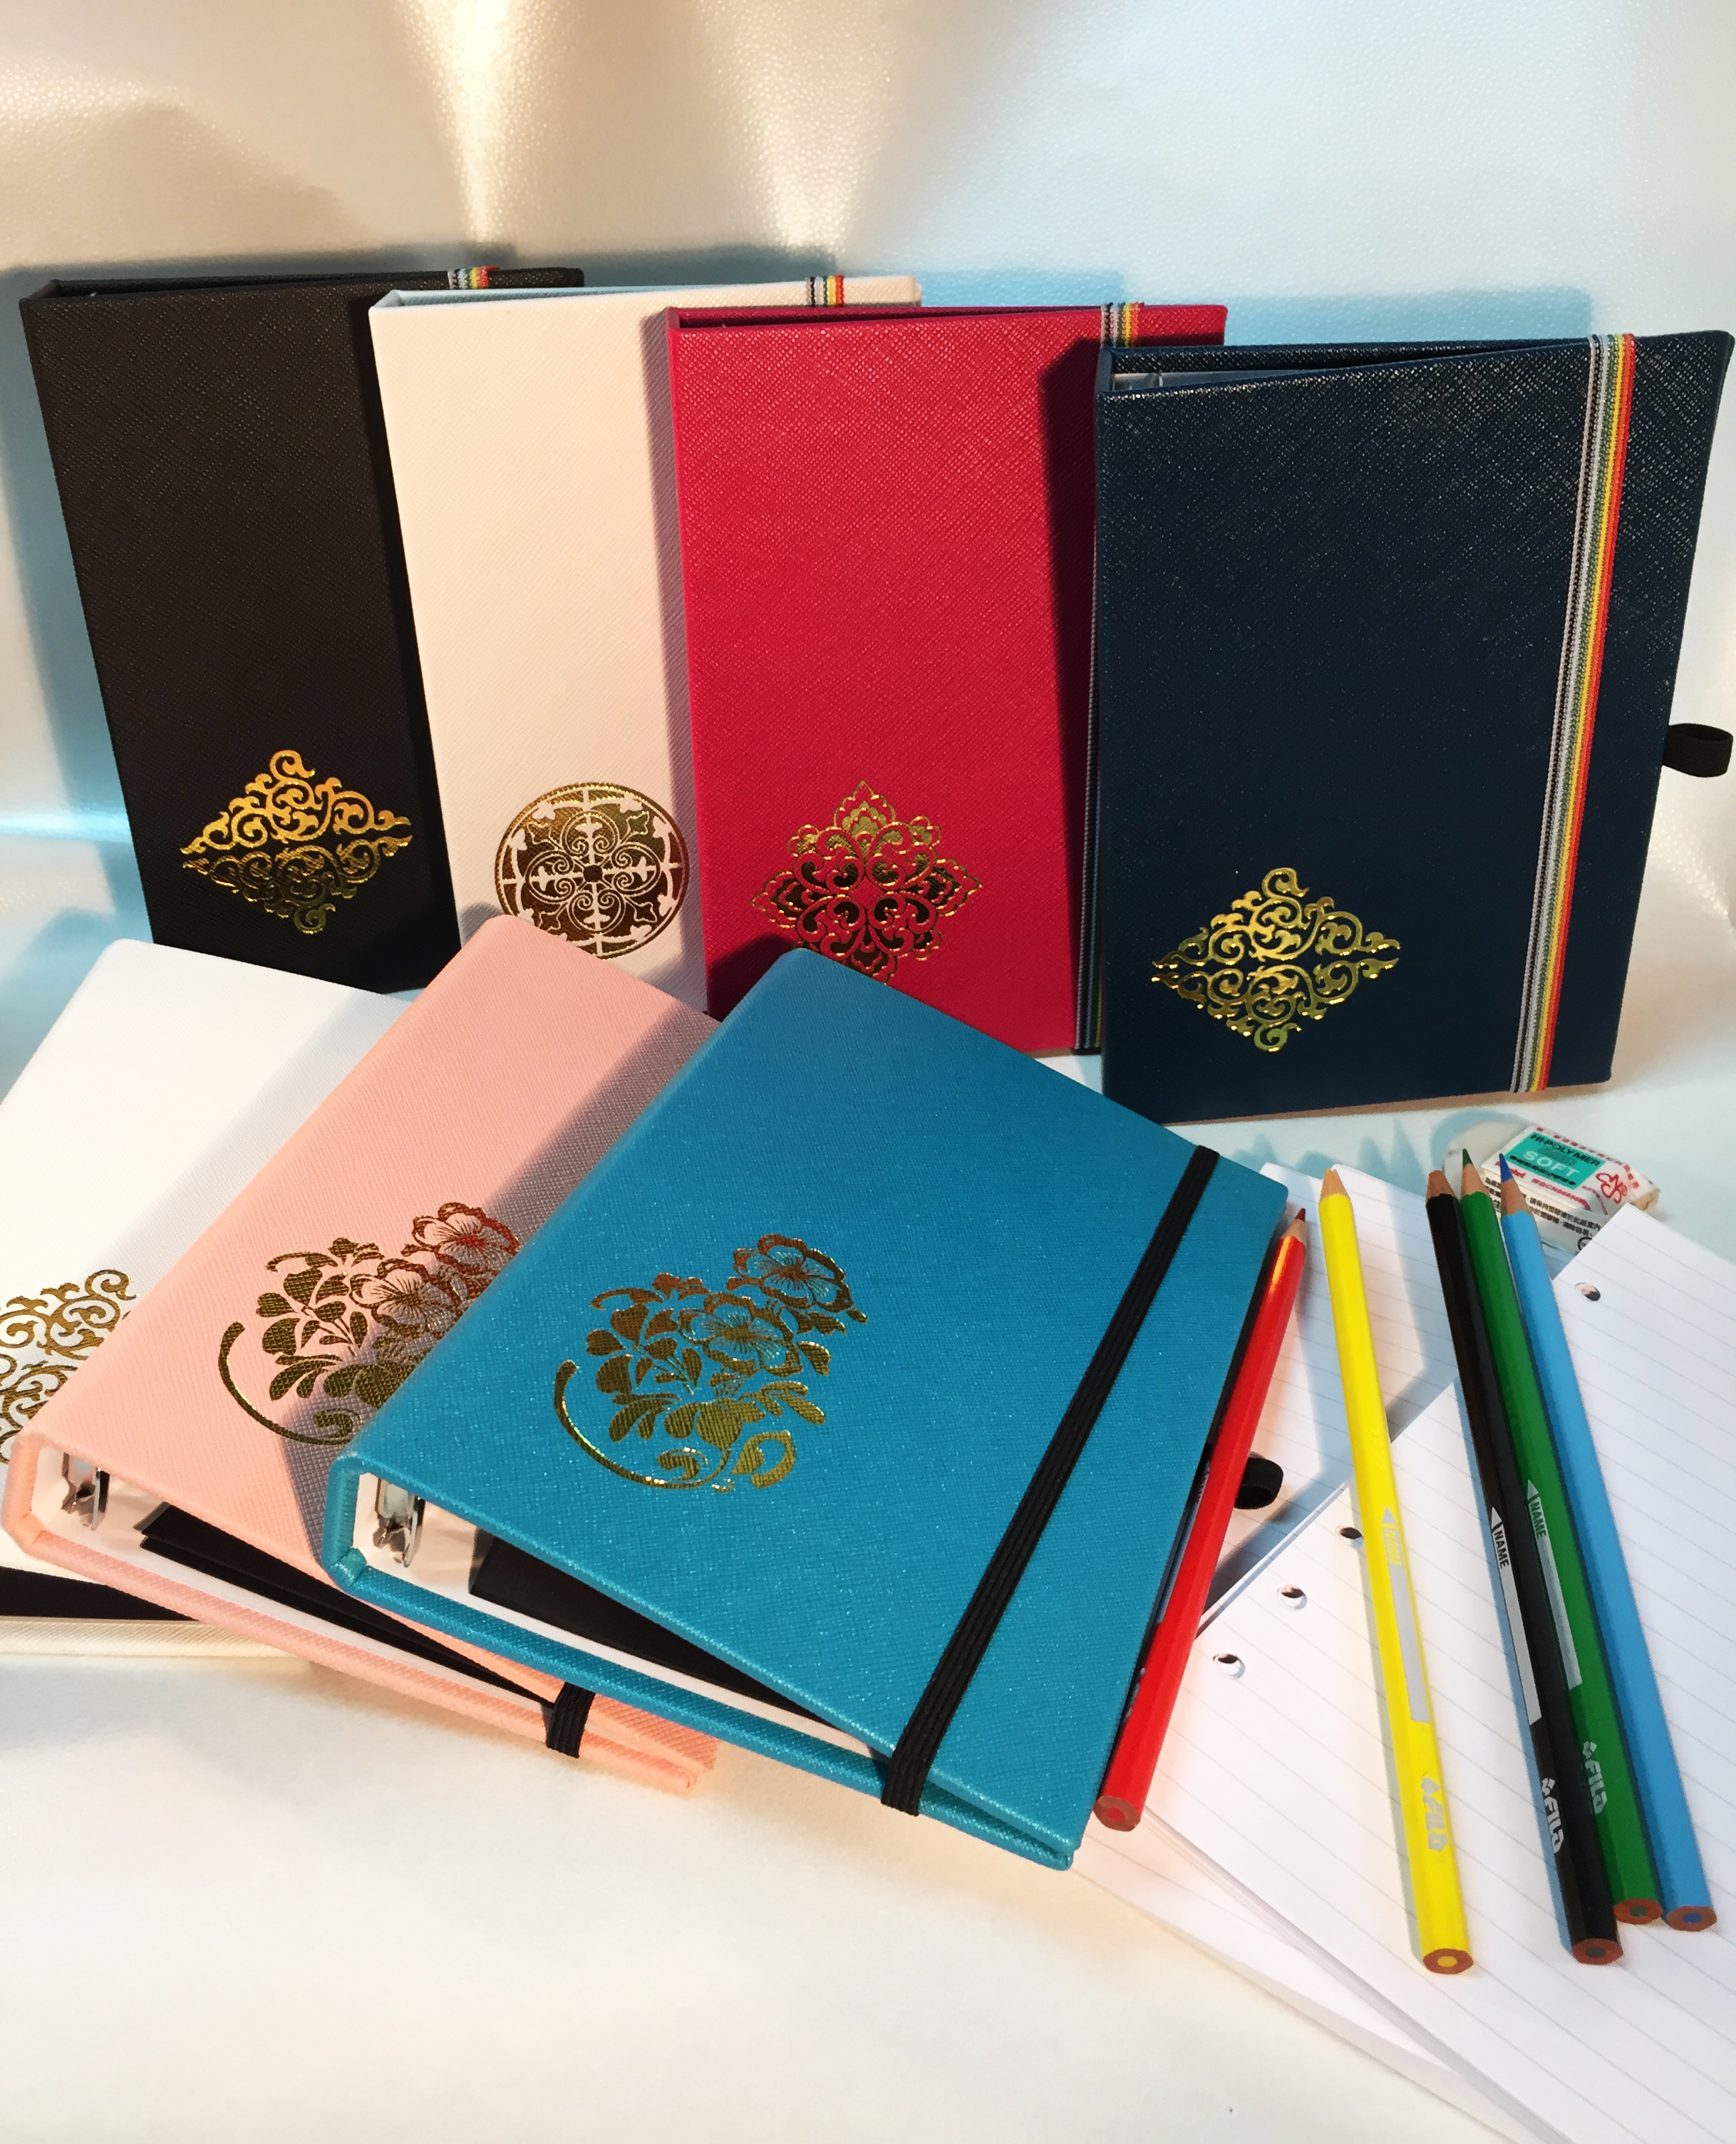 PU Leather Hot Stamp Golden Artwork Notebook - PU Leather Hot Stamp Golden Artwork Notebook